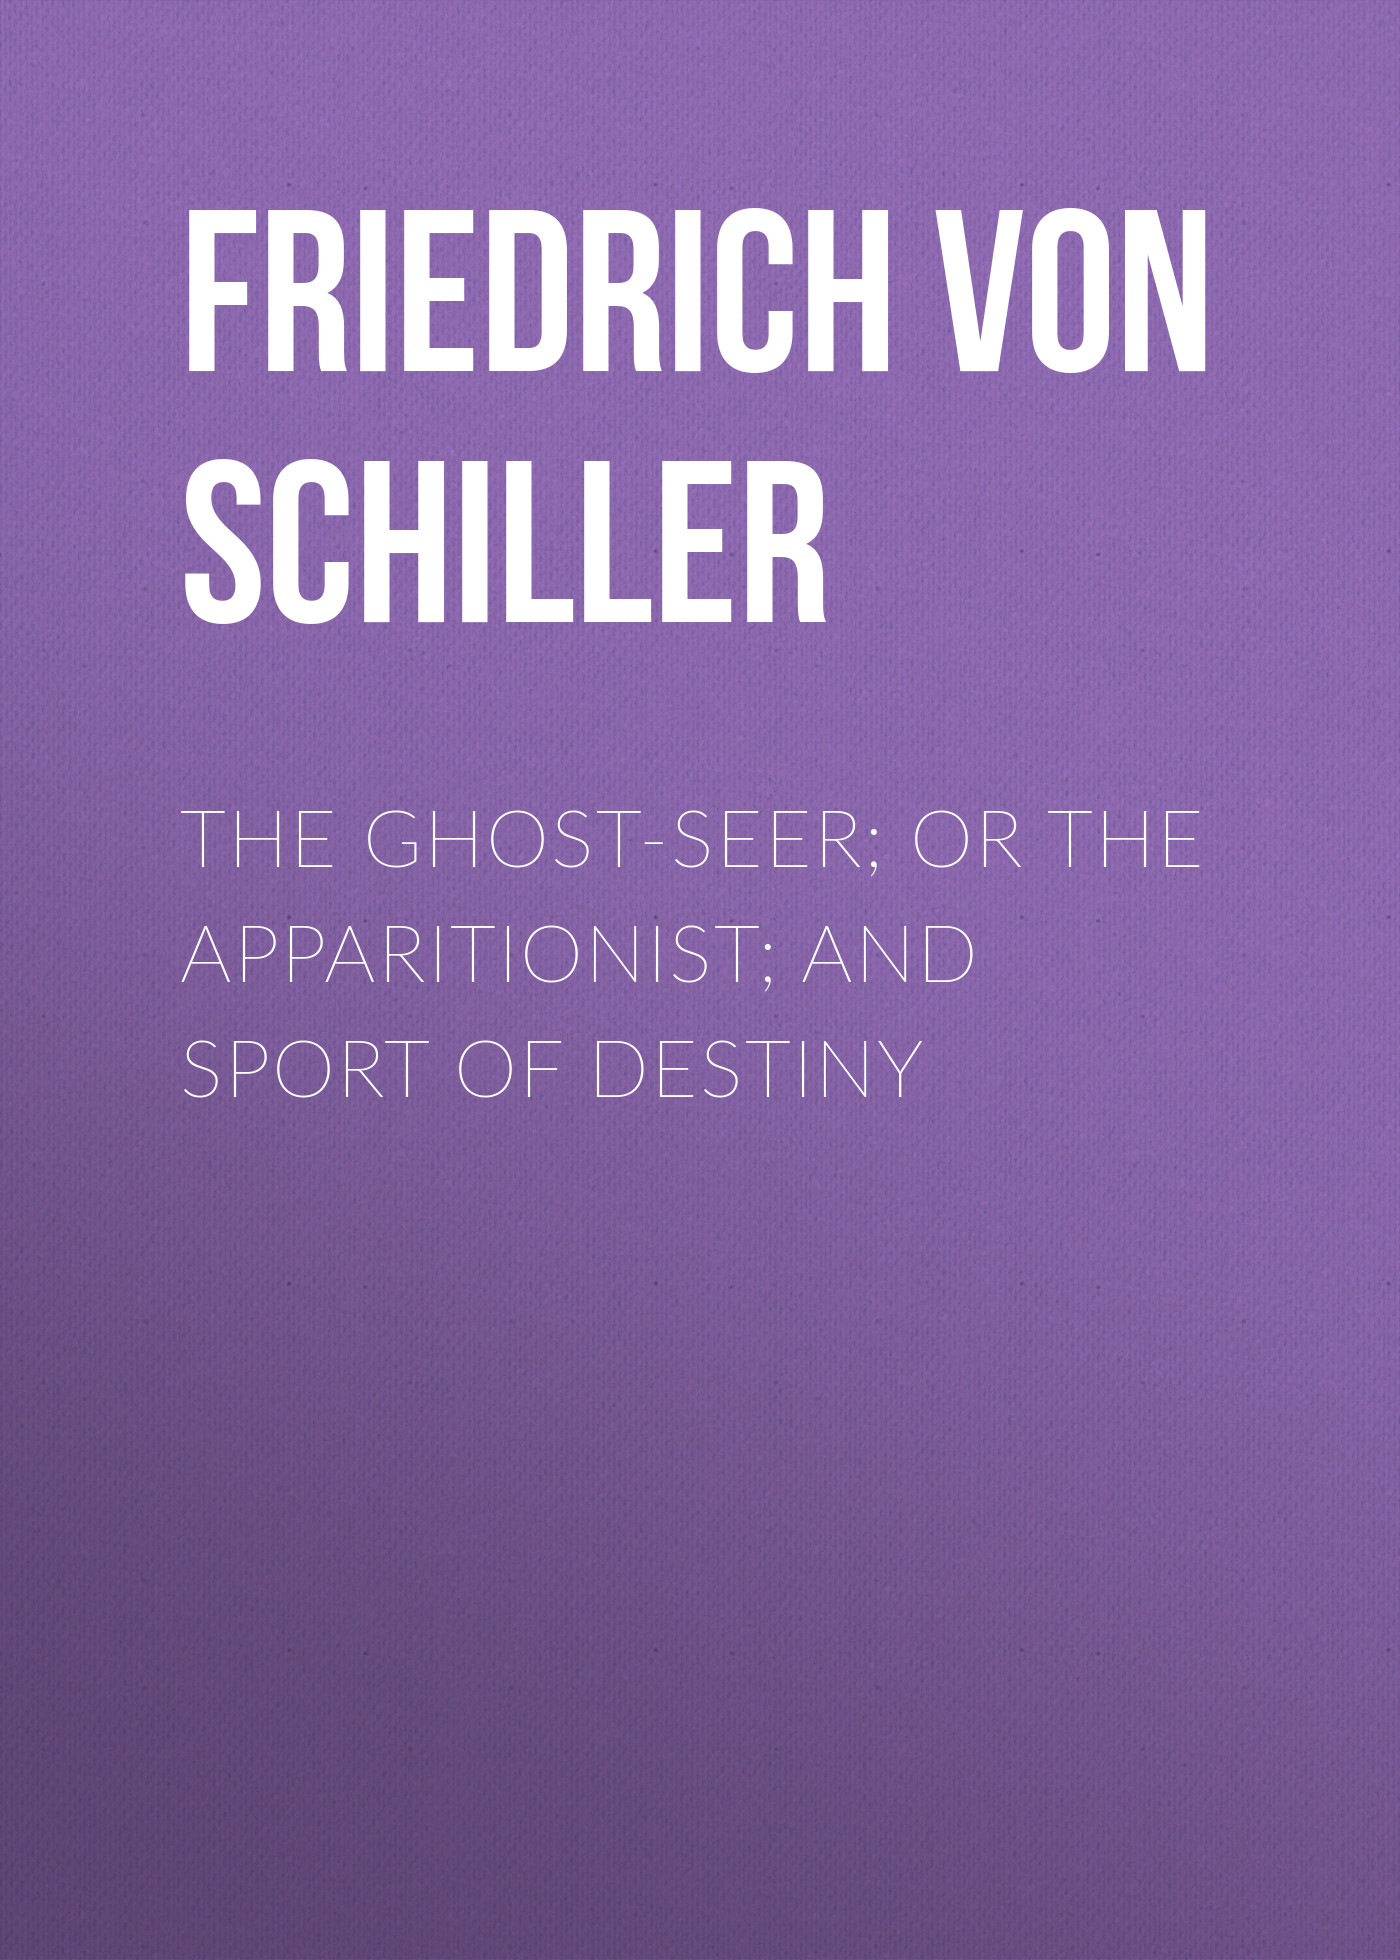 цена на Friedrich von Schiller The Ghost-Seer; or the Apparitionist; and Sport of Destiny